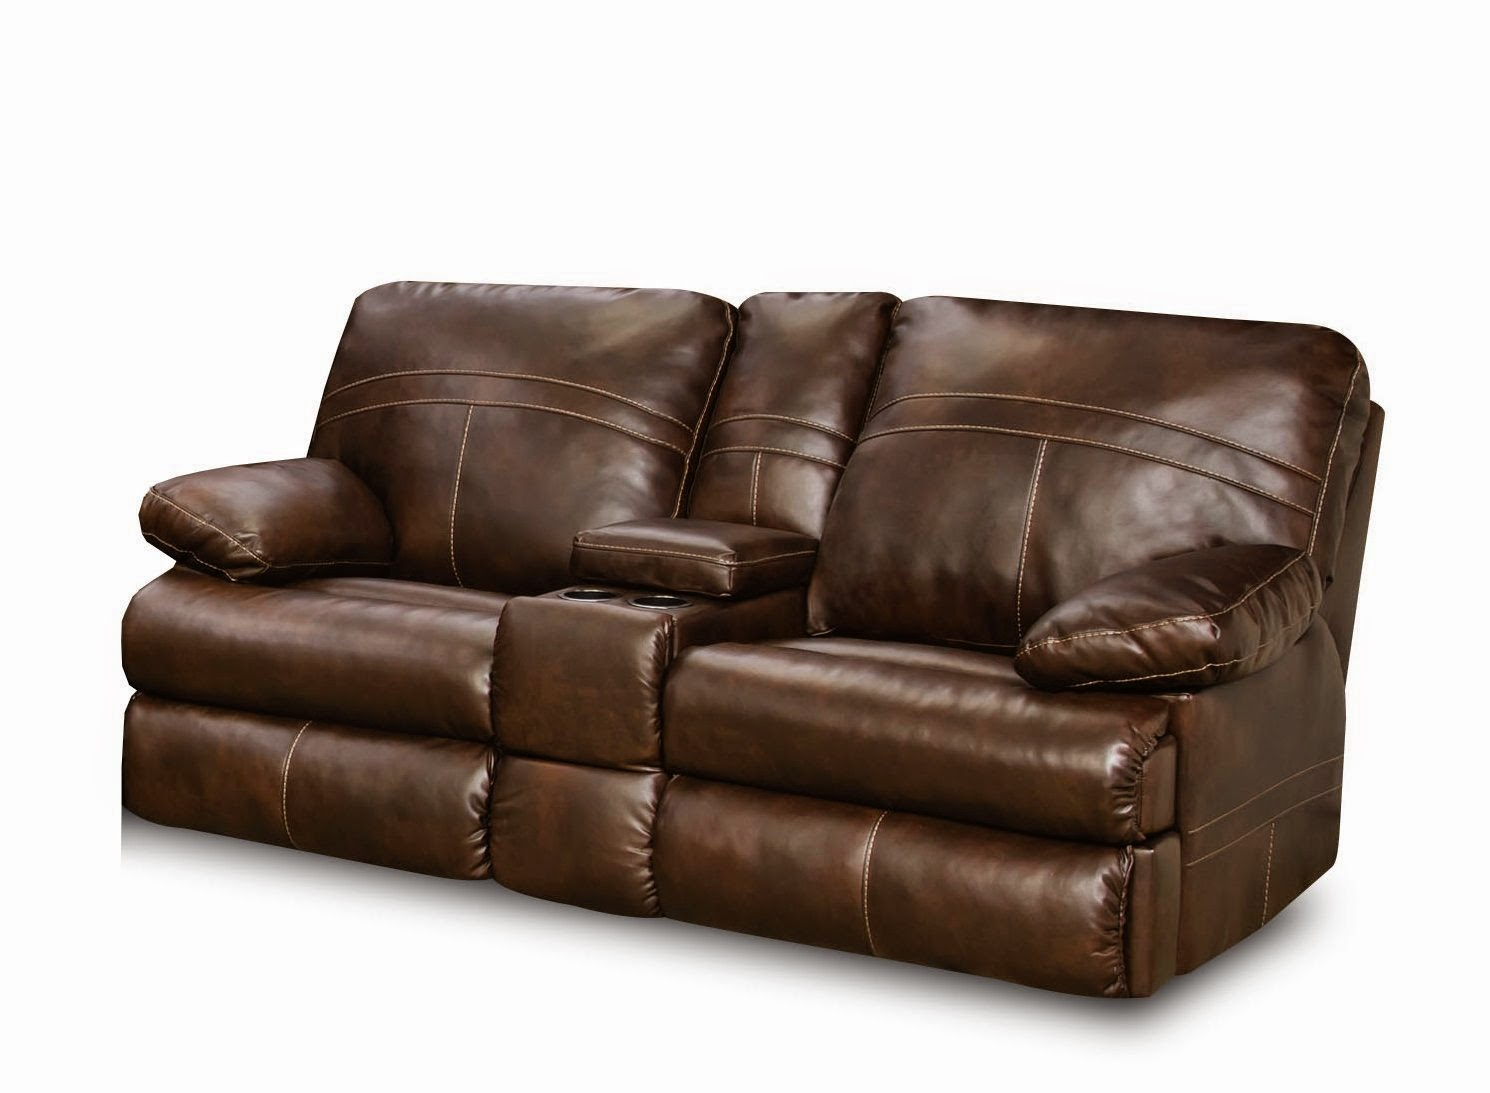 The Best Reclining Leather Sofa Reviews Simmons Leather Reclining Sofa And Loveseat